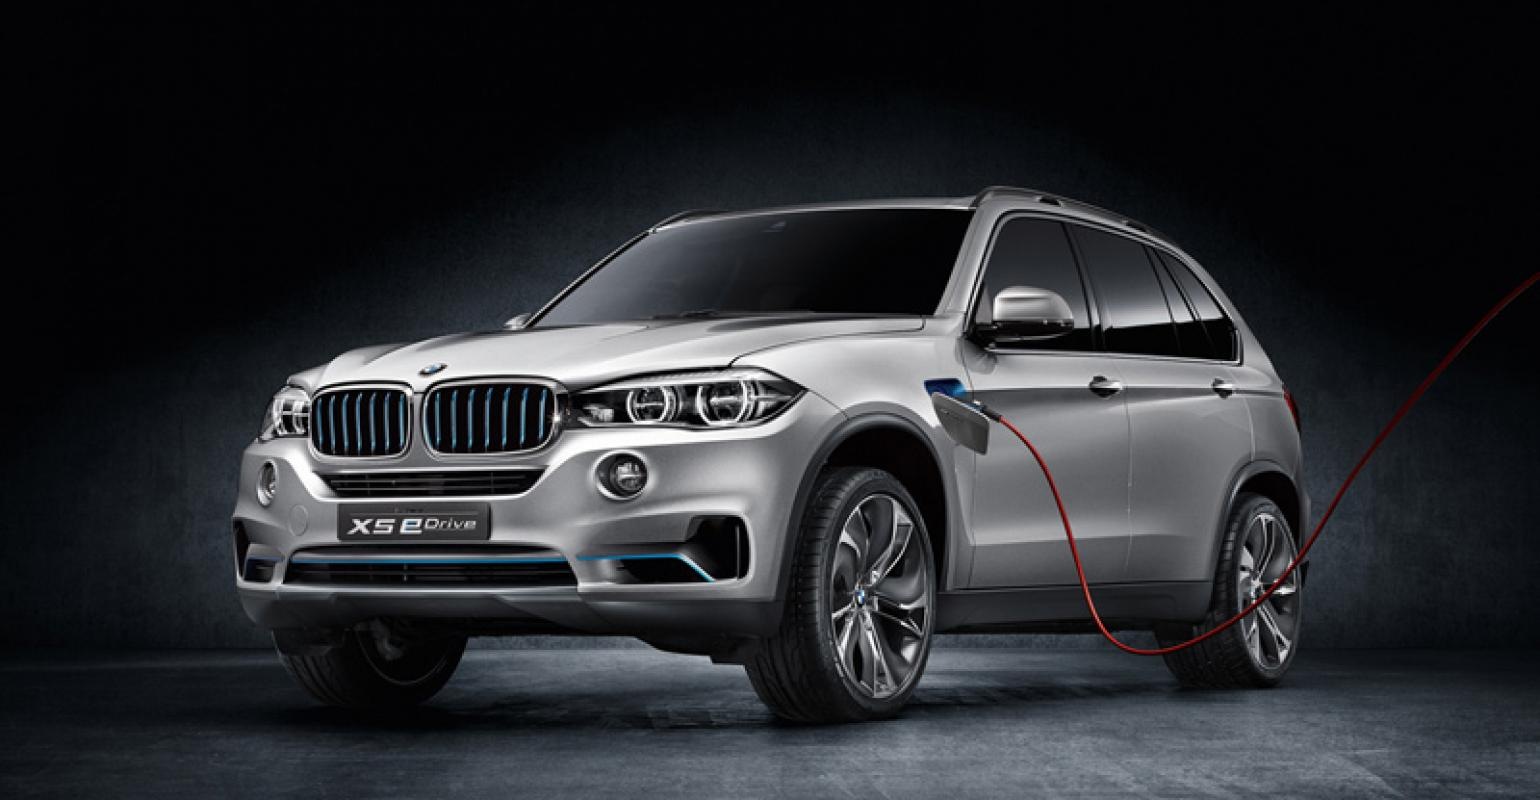 Bmw Concept X5 Edrive Sprints To 61 Mph In Under 70 Seconds